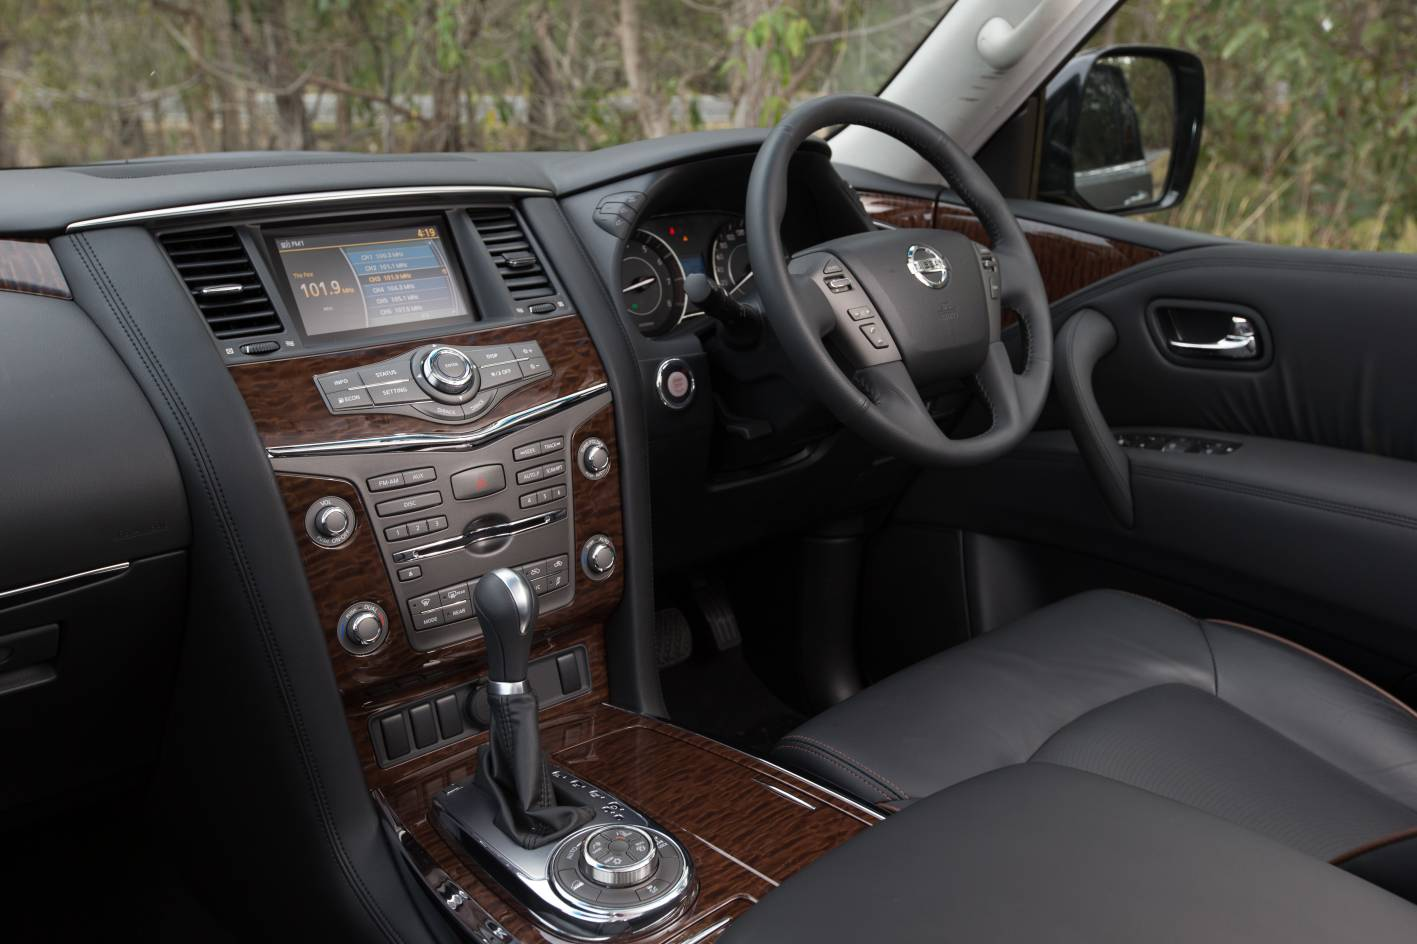 The new Nissan Patrol V8 models offer a fresh new interior design that provide gorgeous detailing and materials, particularly the Ti-L model.